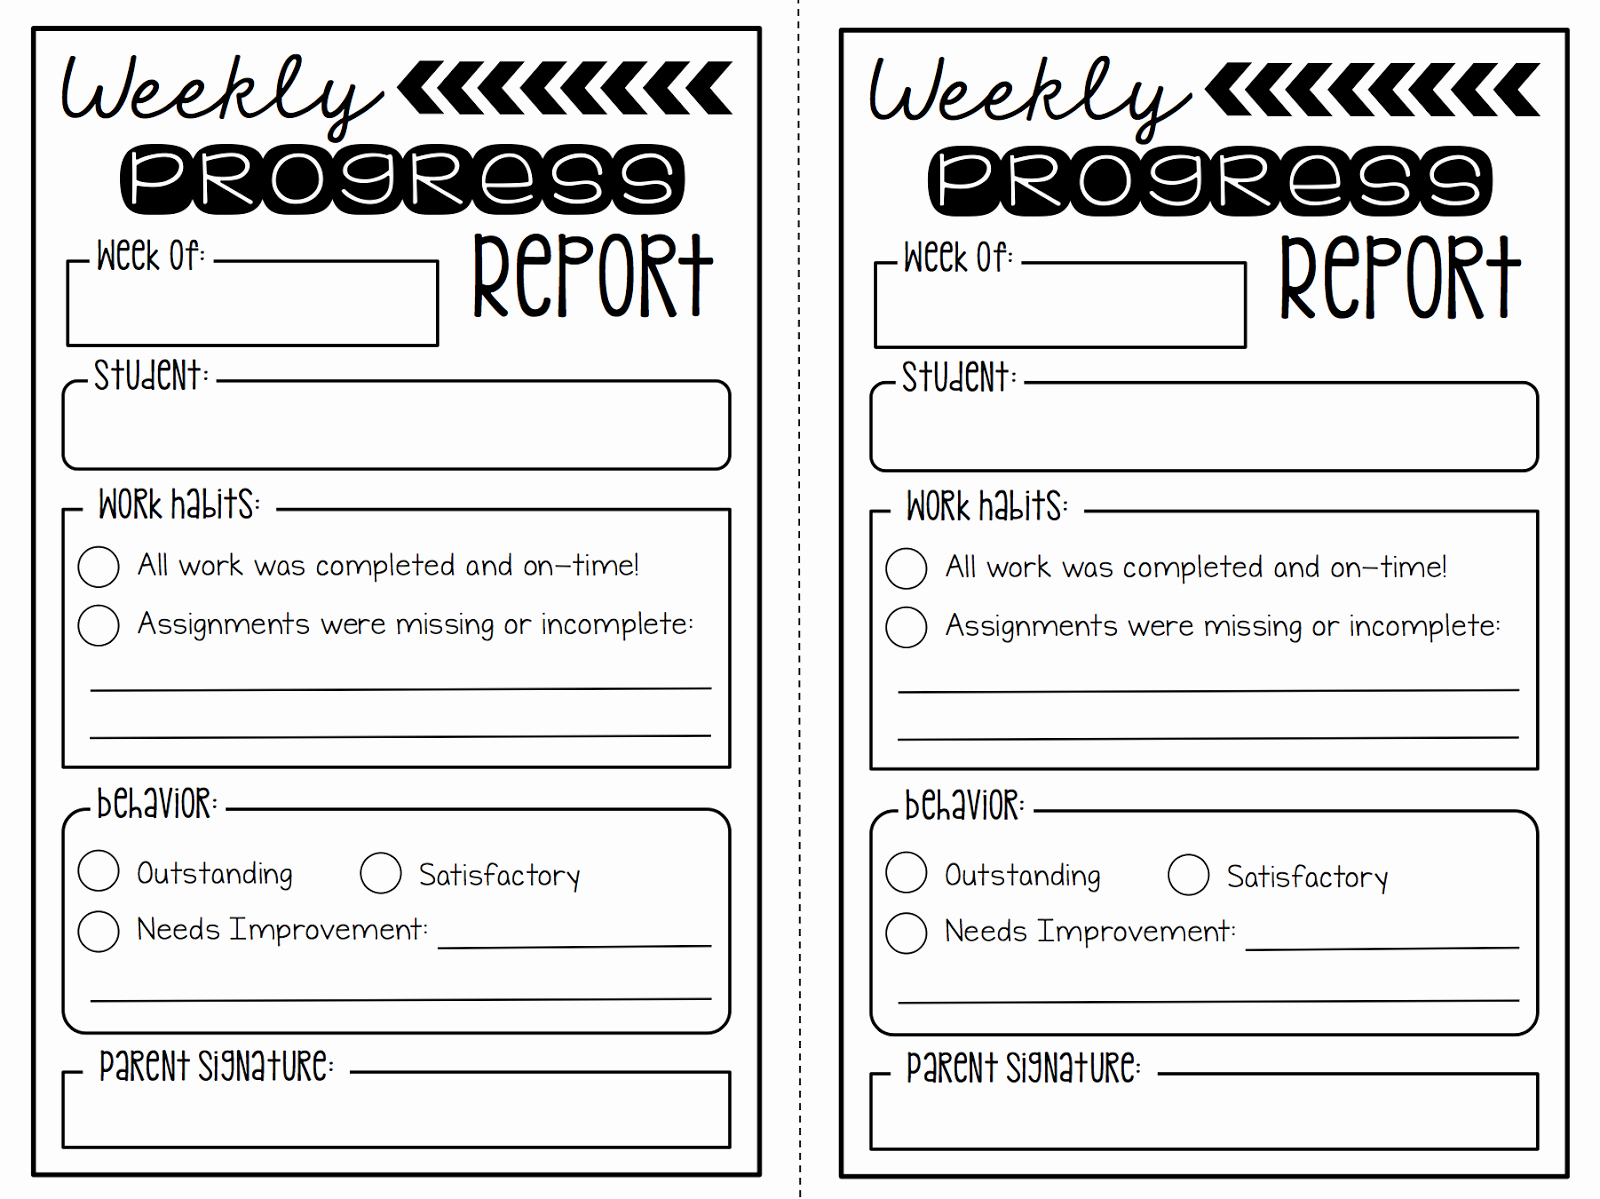 Summertime Revamp 2 Weekly Progress Reports Freebie